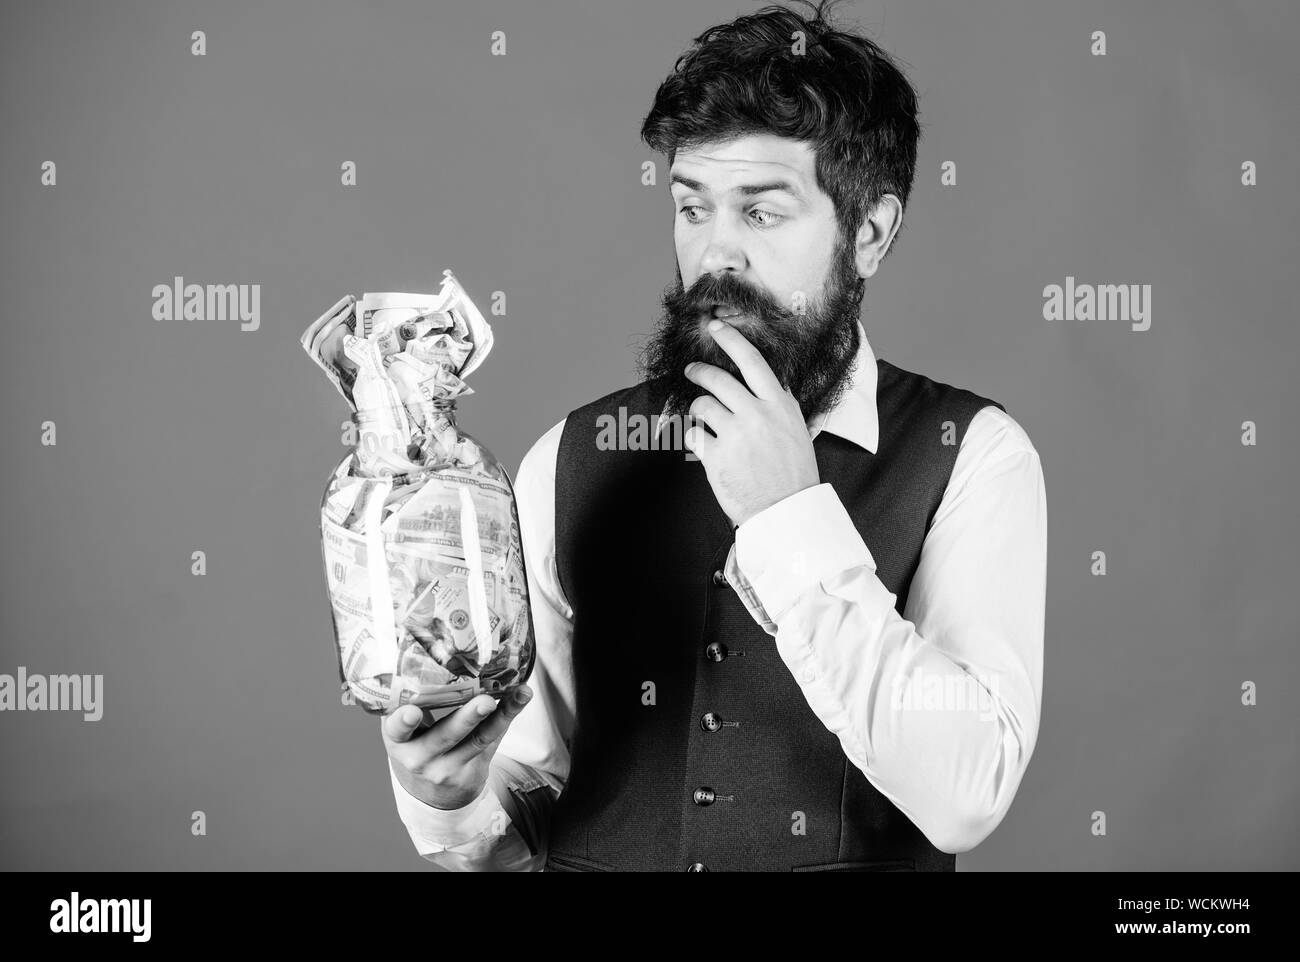 Takes money to make money in his business. Bearded man think of investing money in startup business. Businessman holding money in glass jar. Business and finance. Business savings. Stock Photo